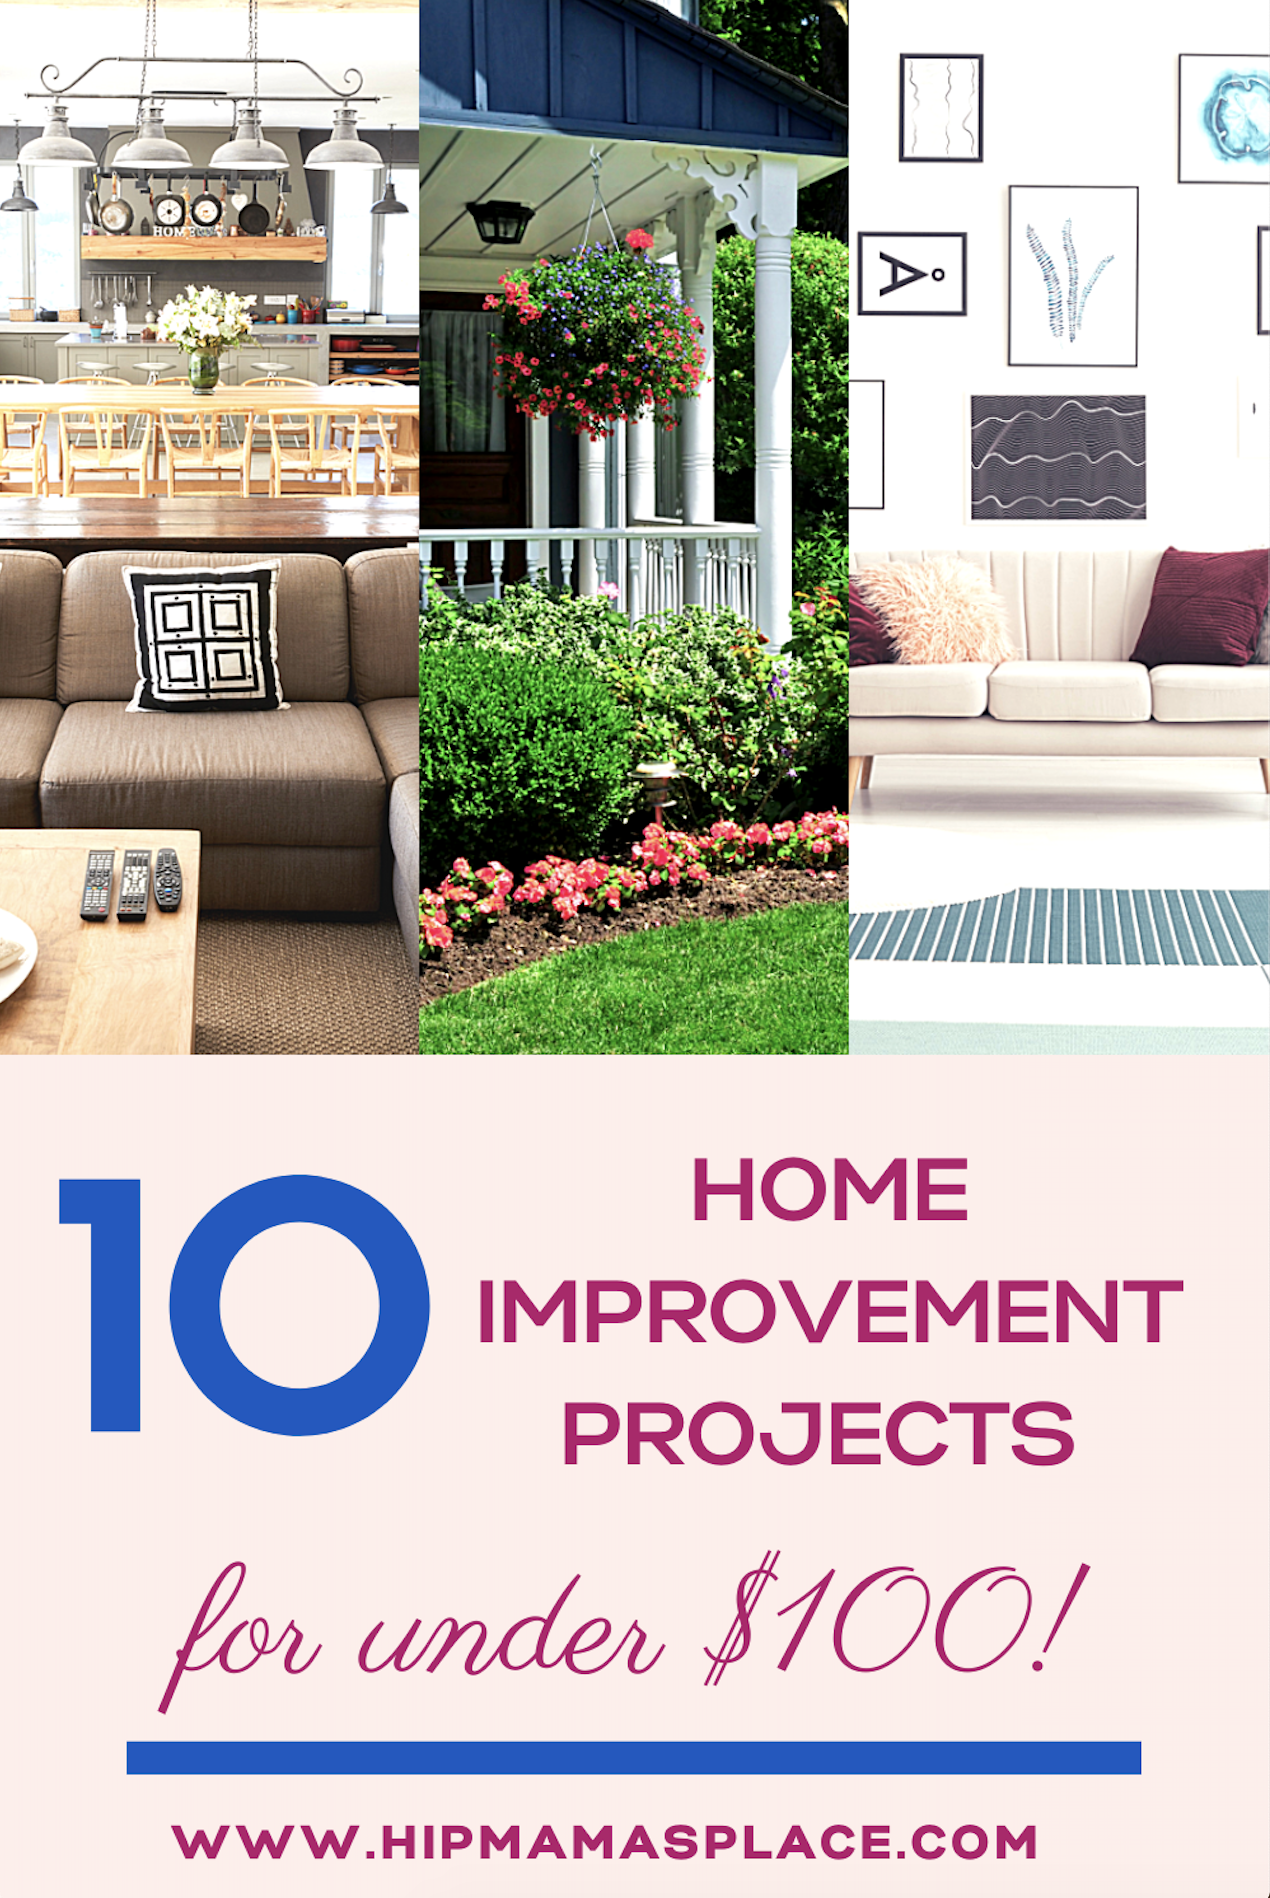 On a tight budget or just don't want to spend money on a full home renovation? Read on for 10 home improvement projects you can do for under $100!